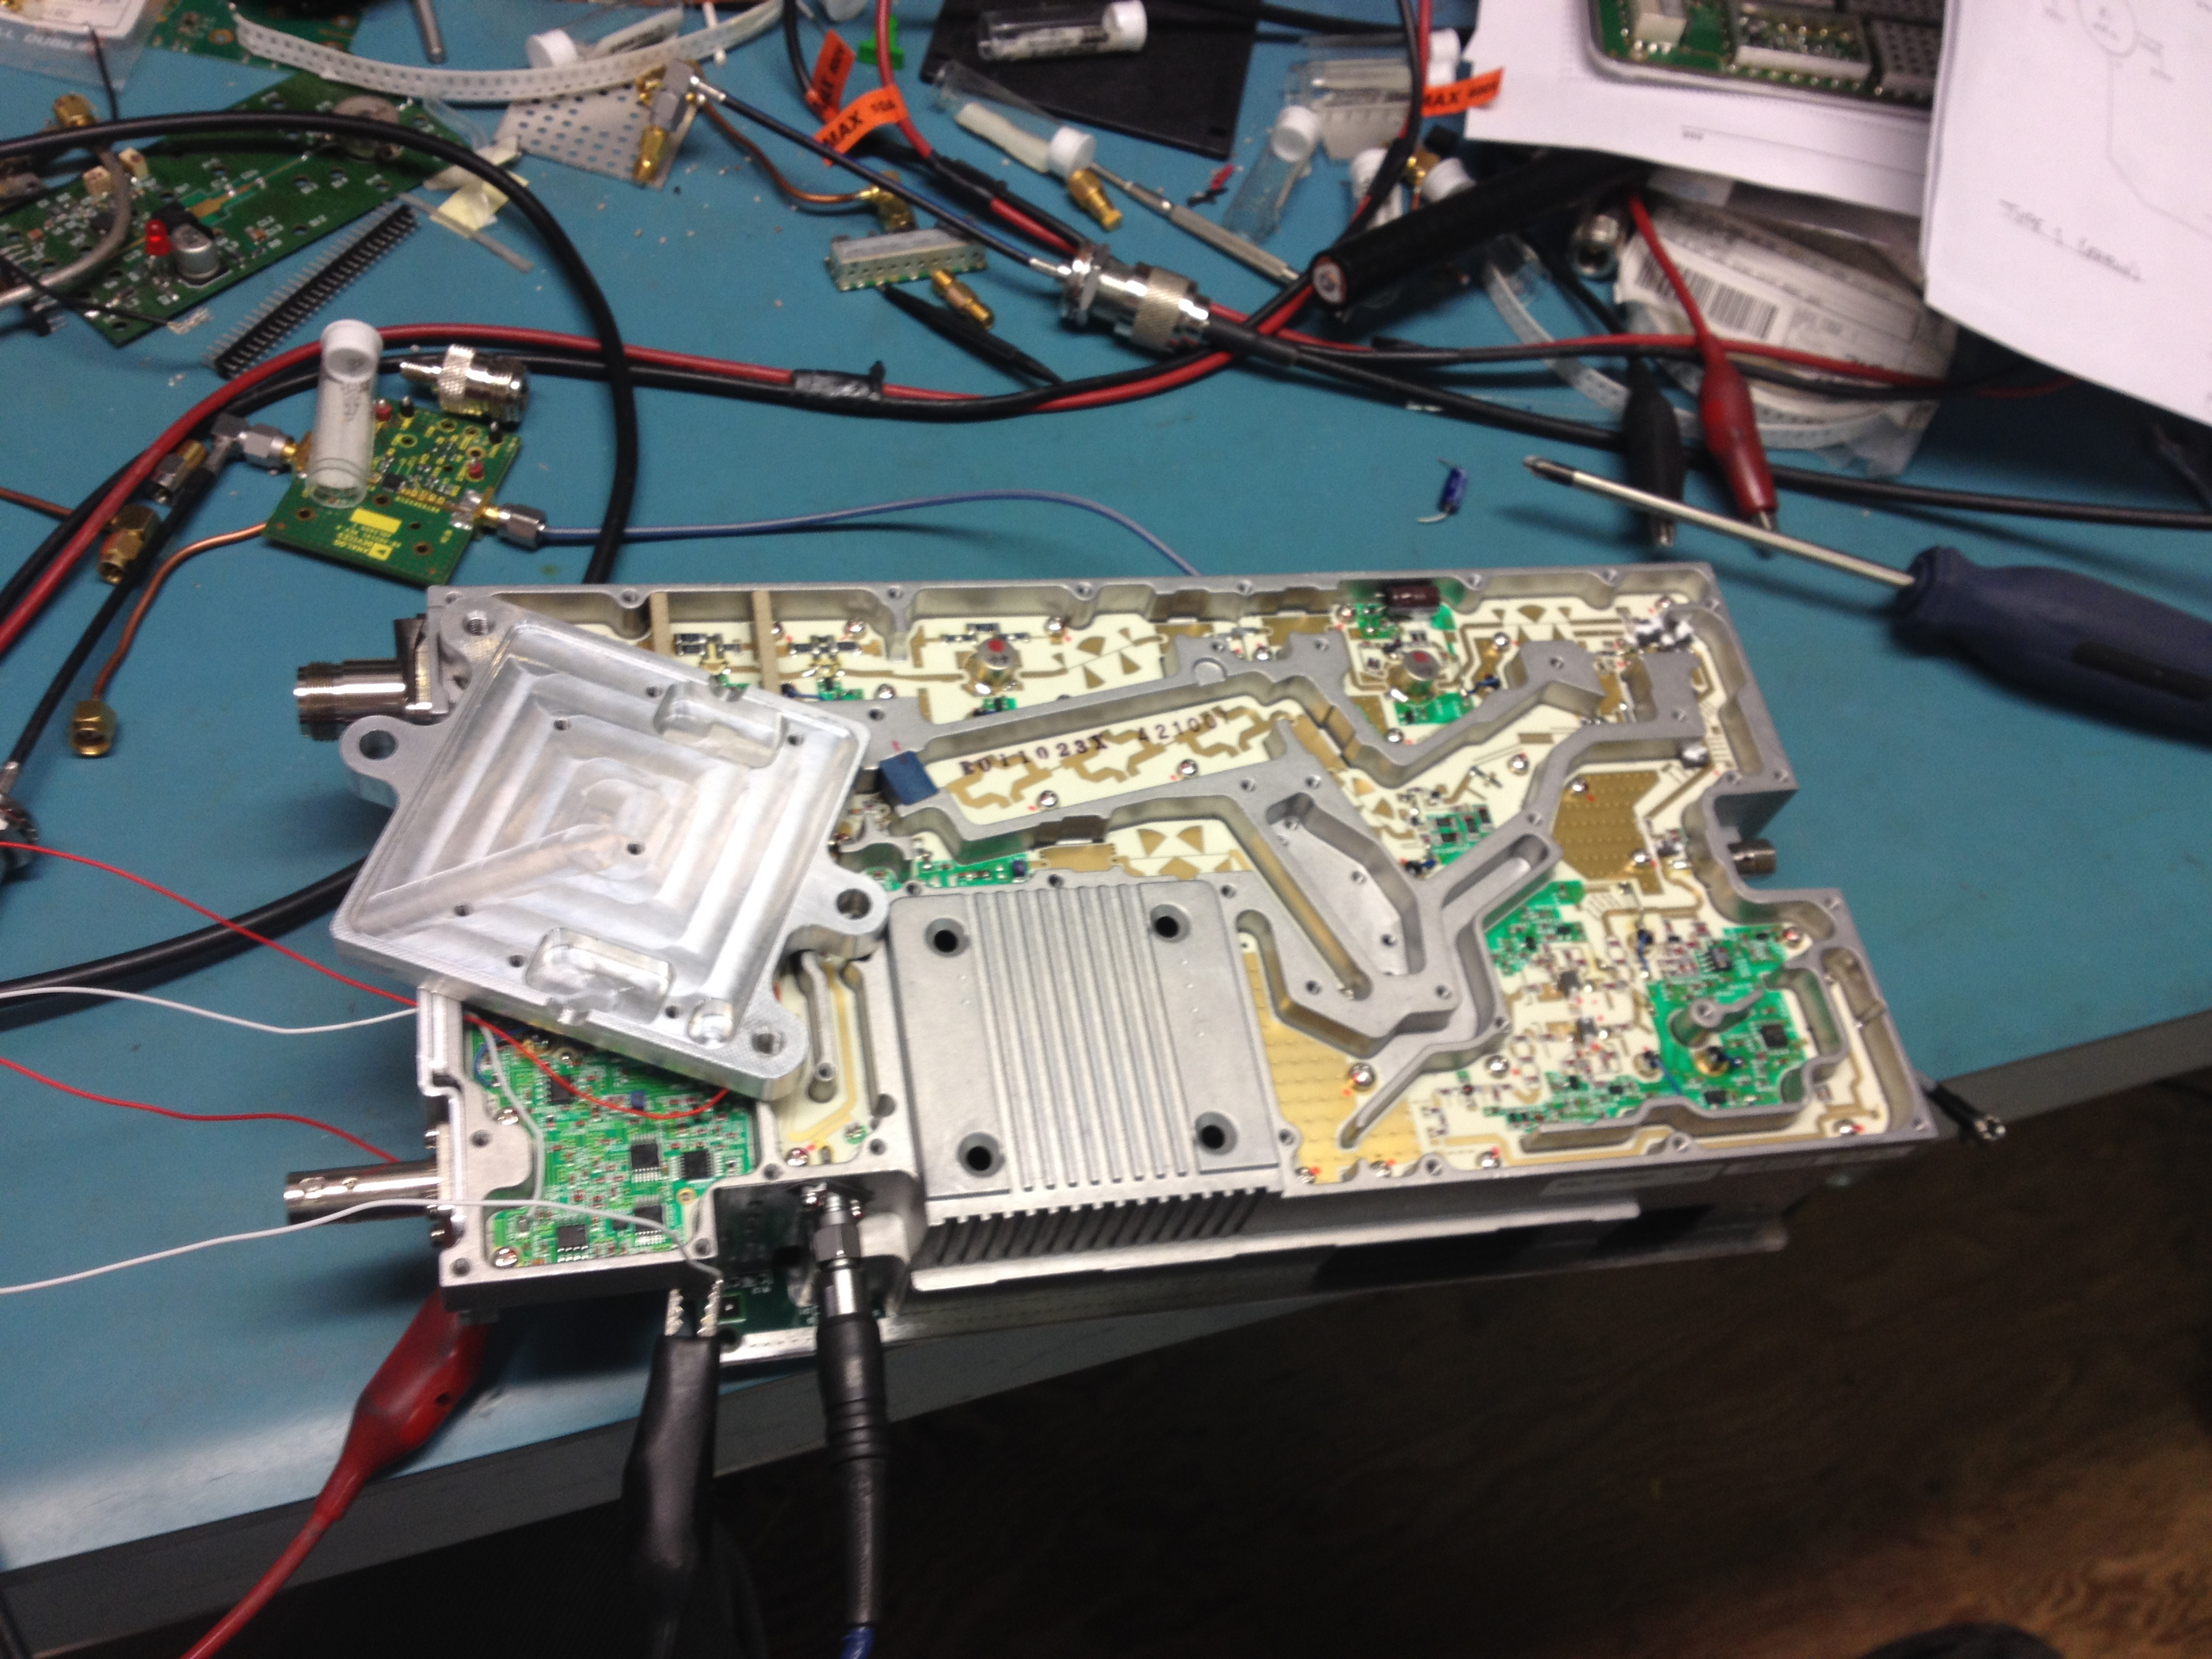 Shot during alignment, chunk of aluminum acts to shield VCO